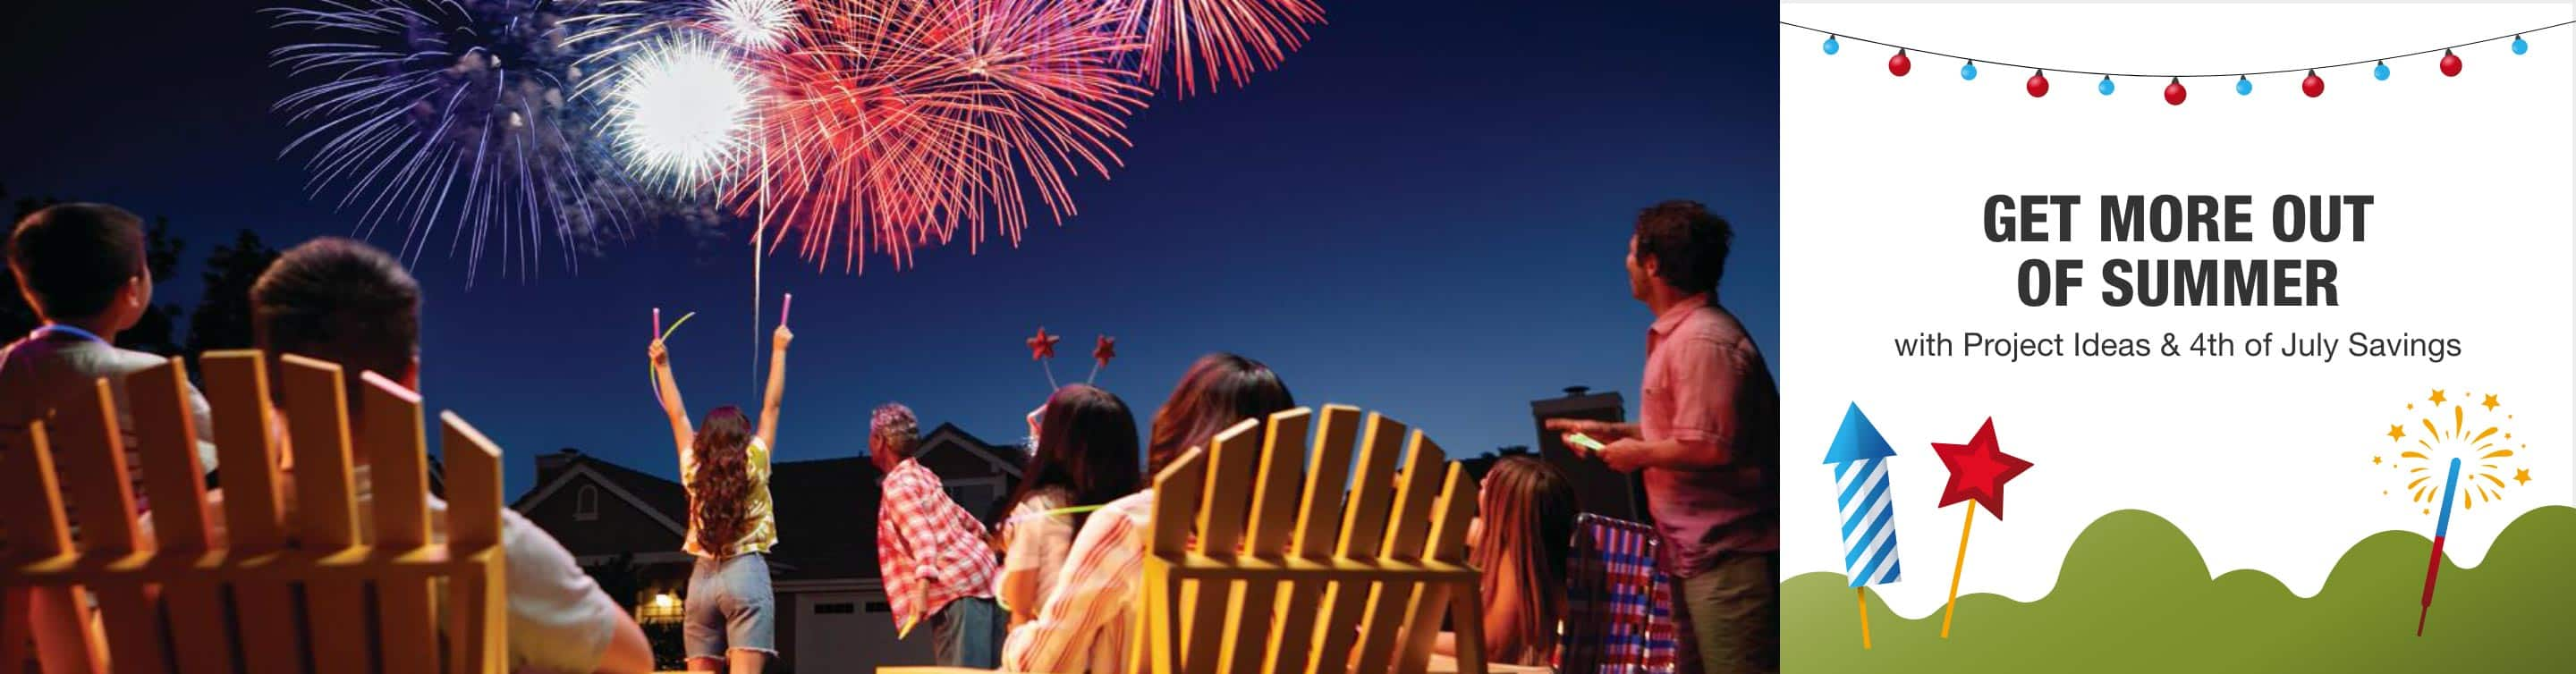 get more out of summer with Project Ideas & 4th of July savings